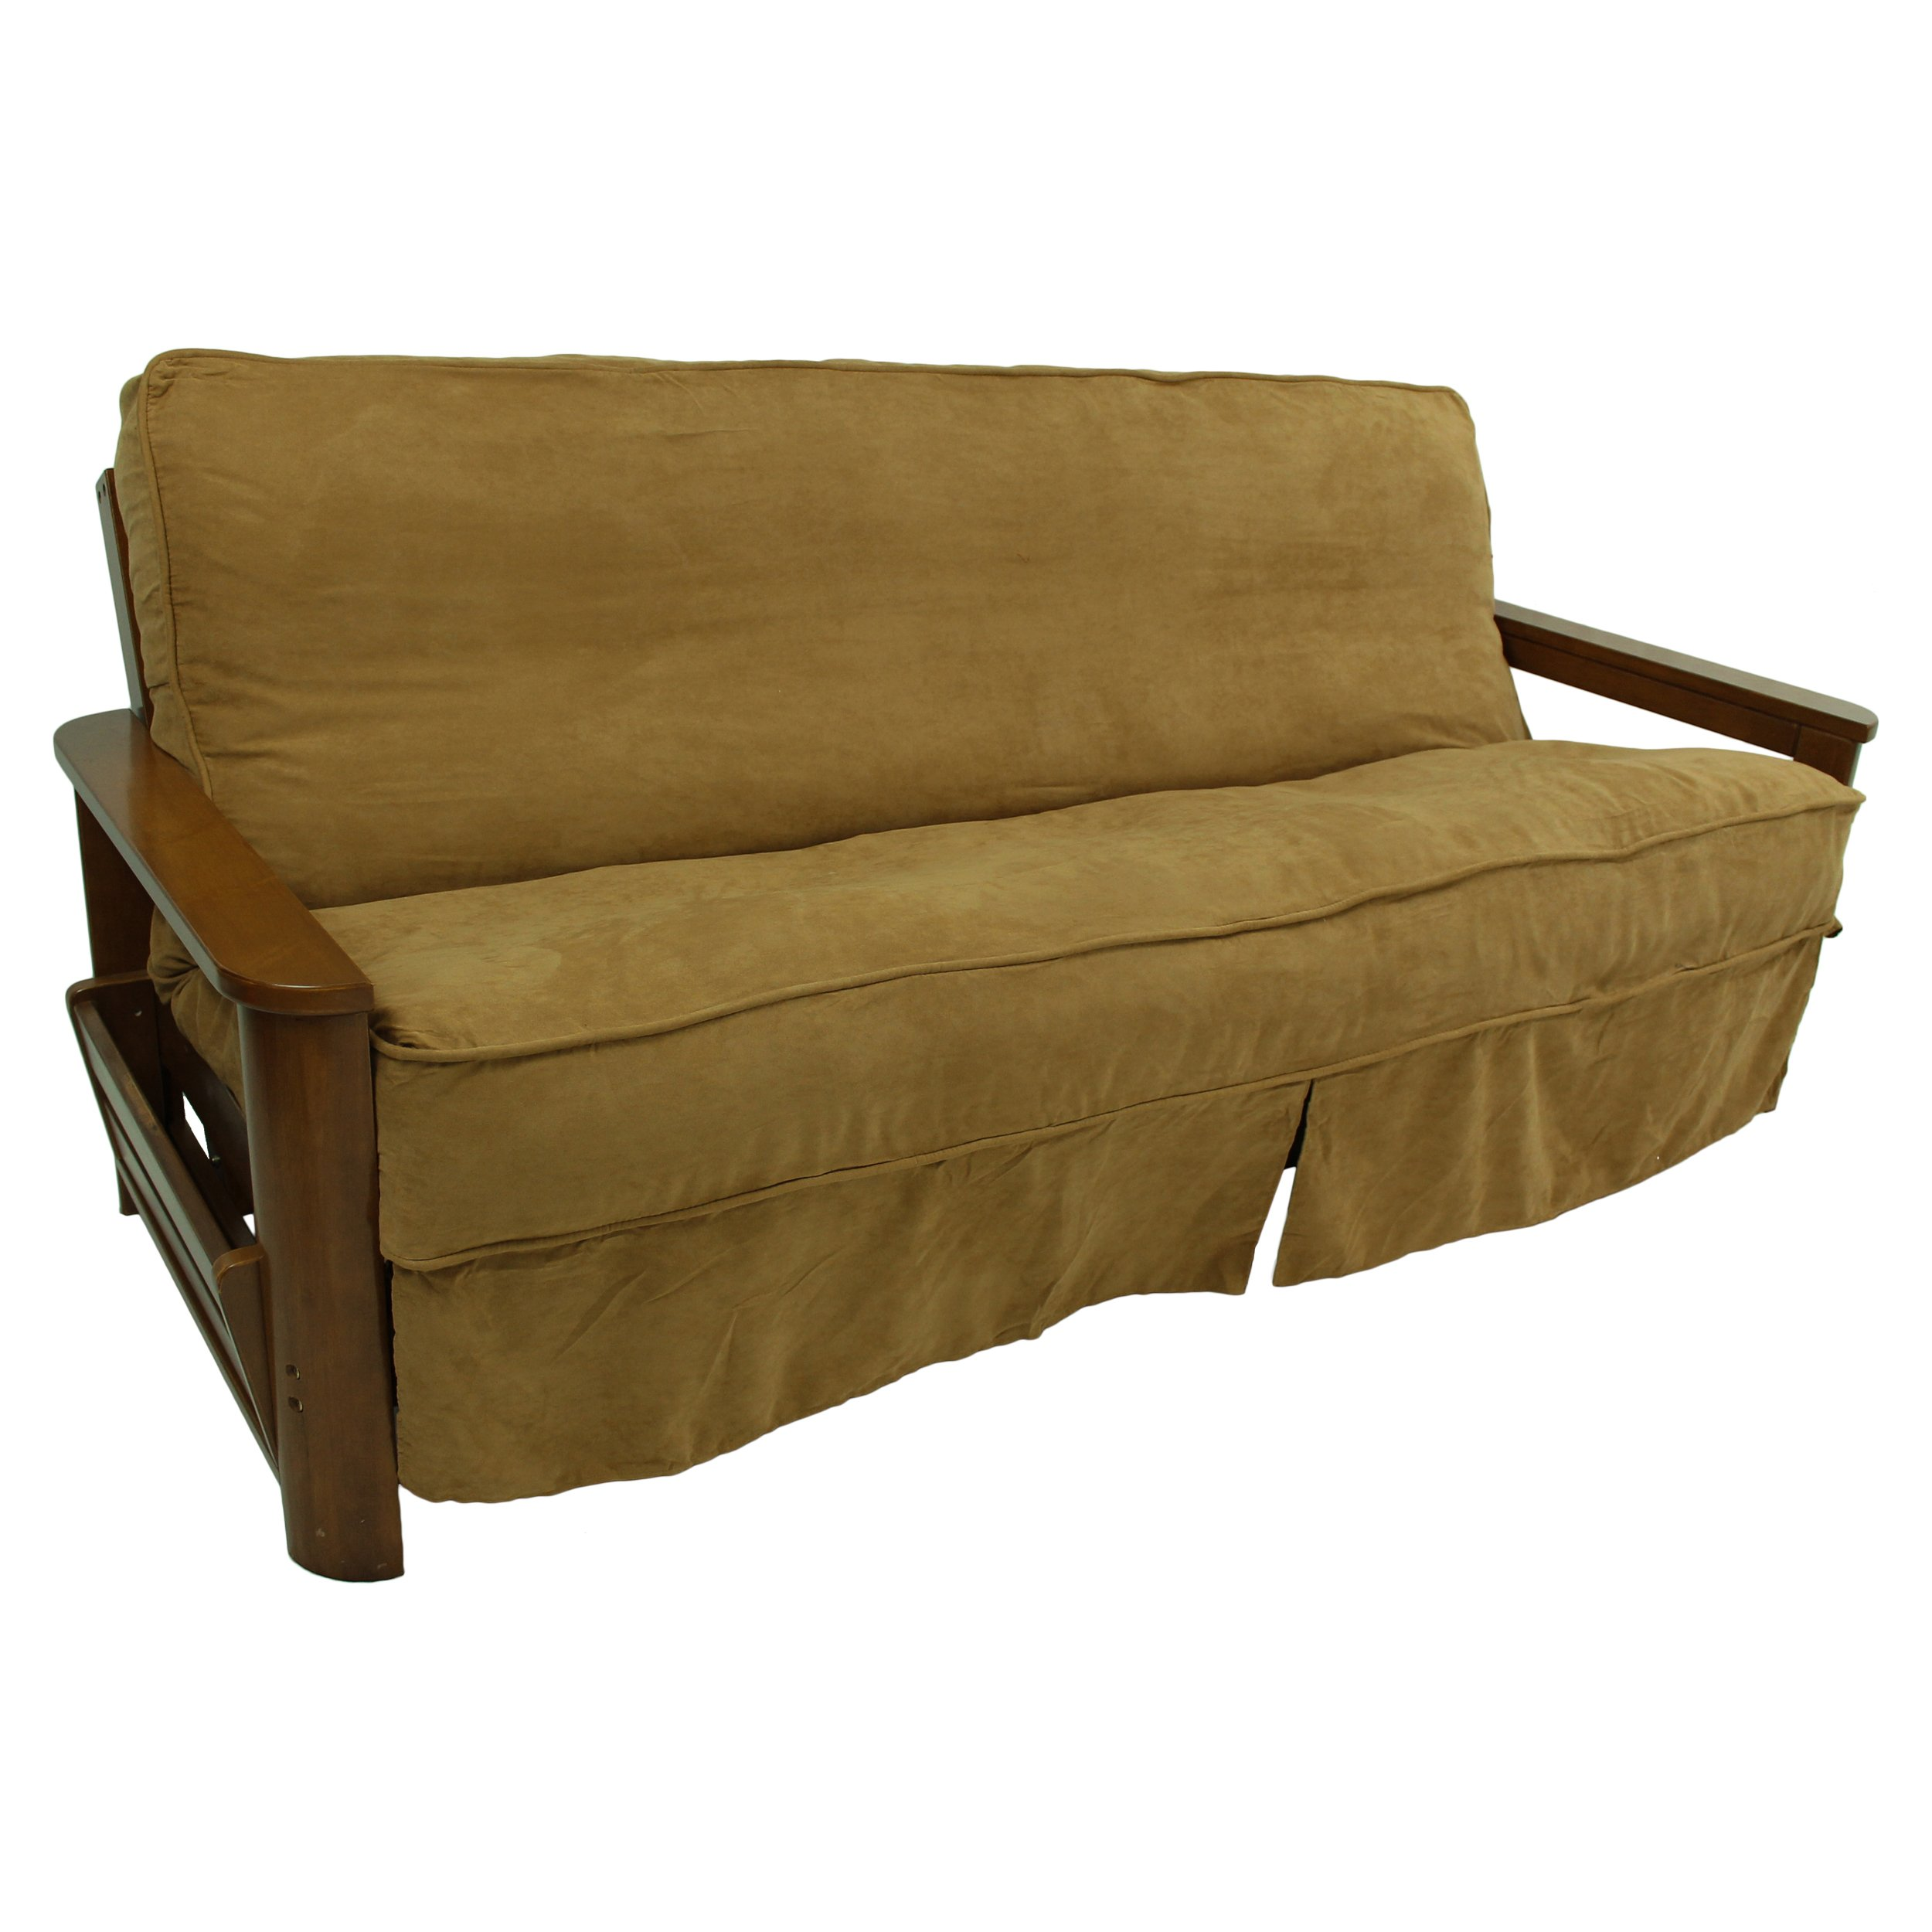 Blazing Needles Solid Microsuede Double Corded 8'' to 9'' Futon Slipcover, Full, Camel